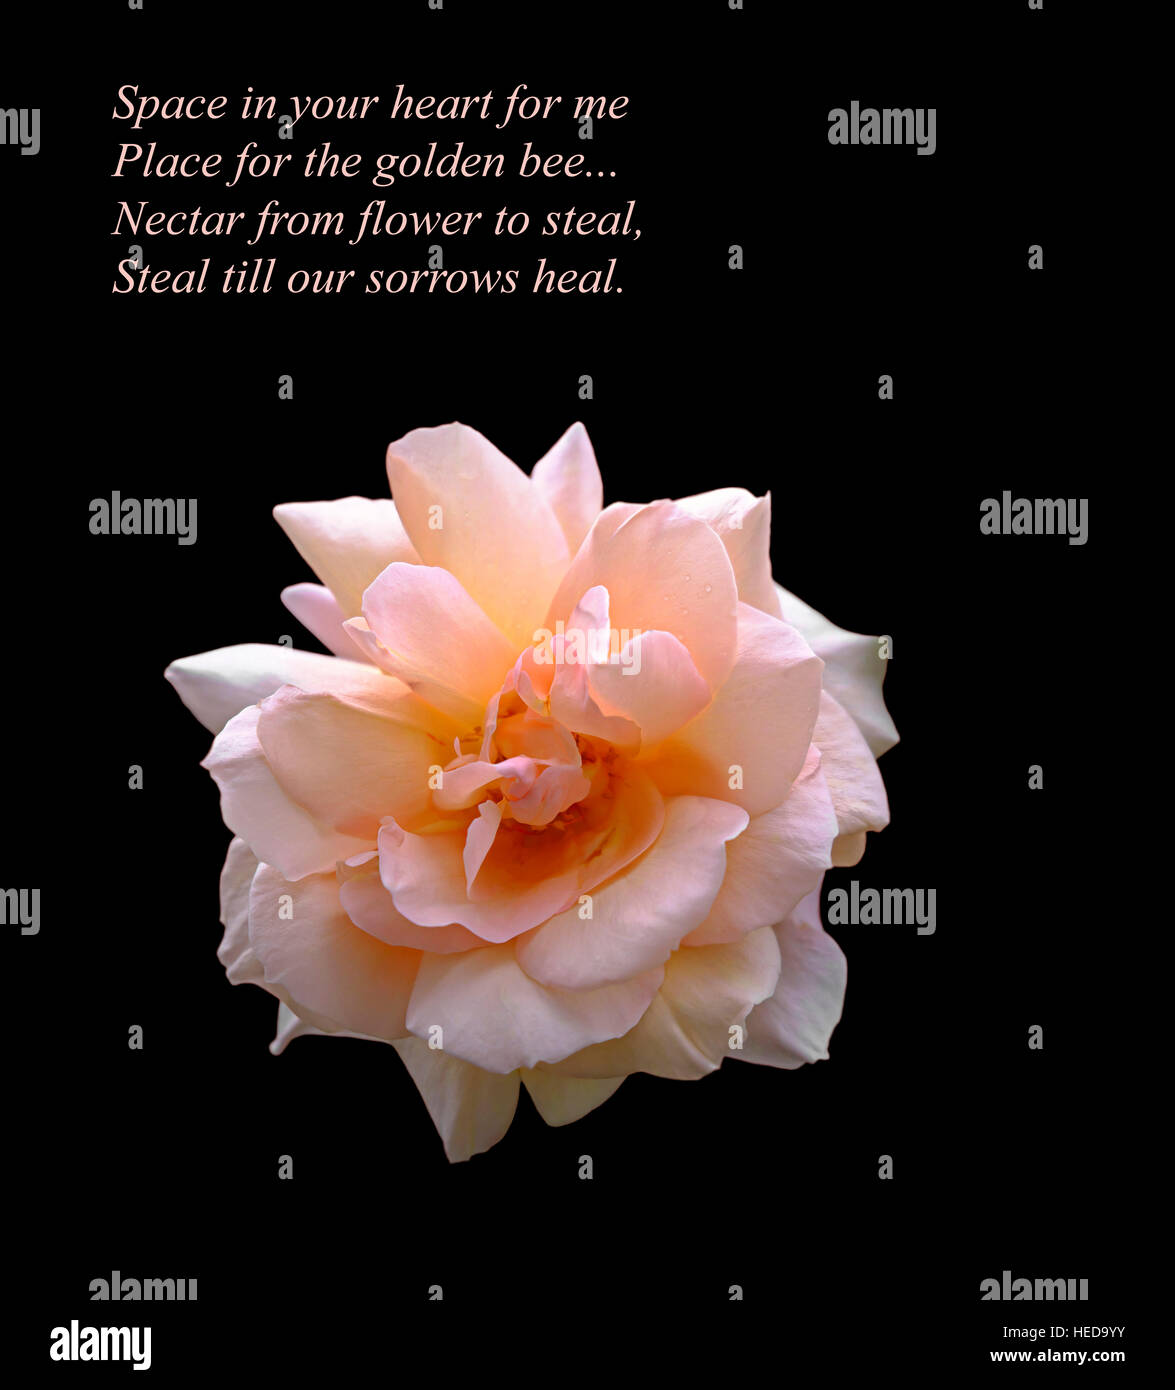 A beautiful pink rose cut out on dark background with an original a beautiful pink rose cut out on dark background with an original romantic verse by the poet russ merne izmirmasajfo